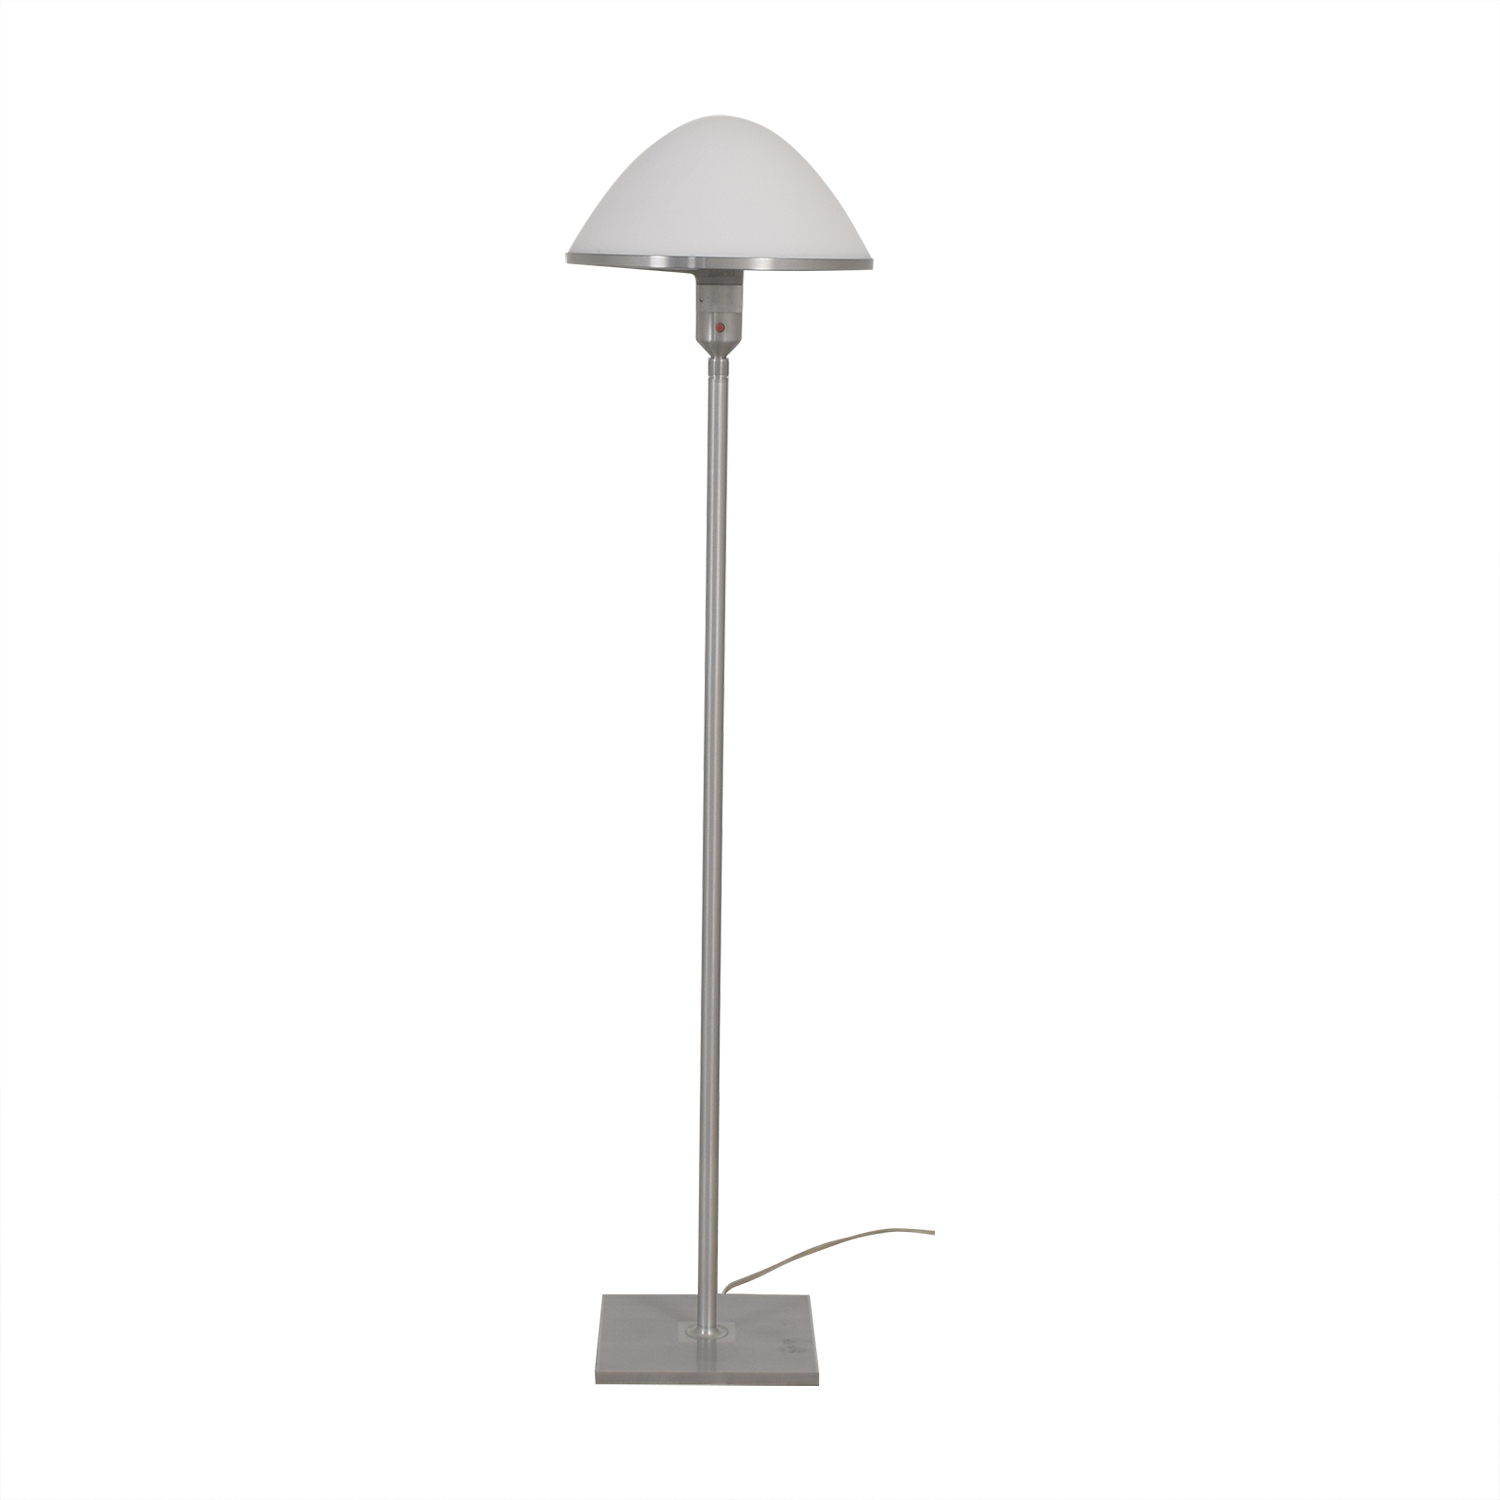 Luceplan Luceplan Miranda Floor Lamp Decor